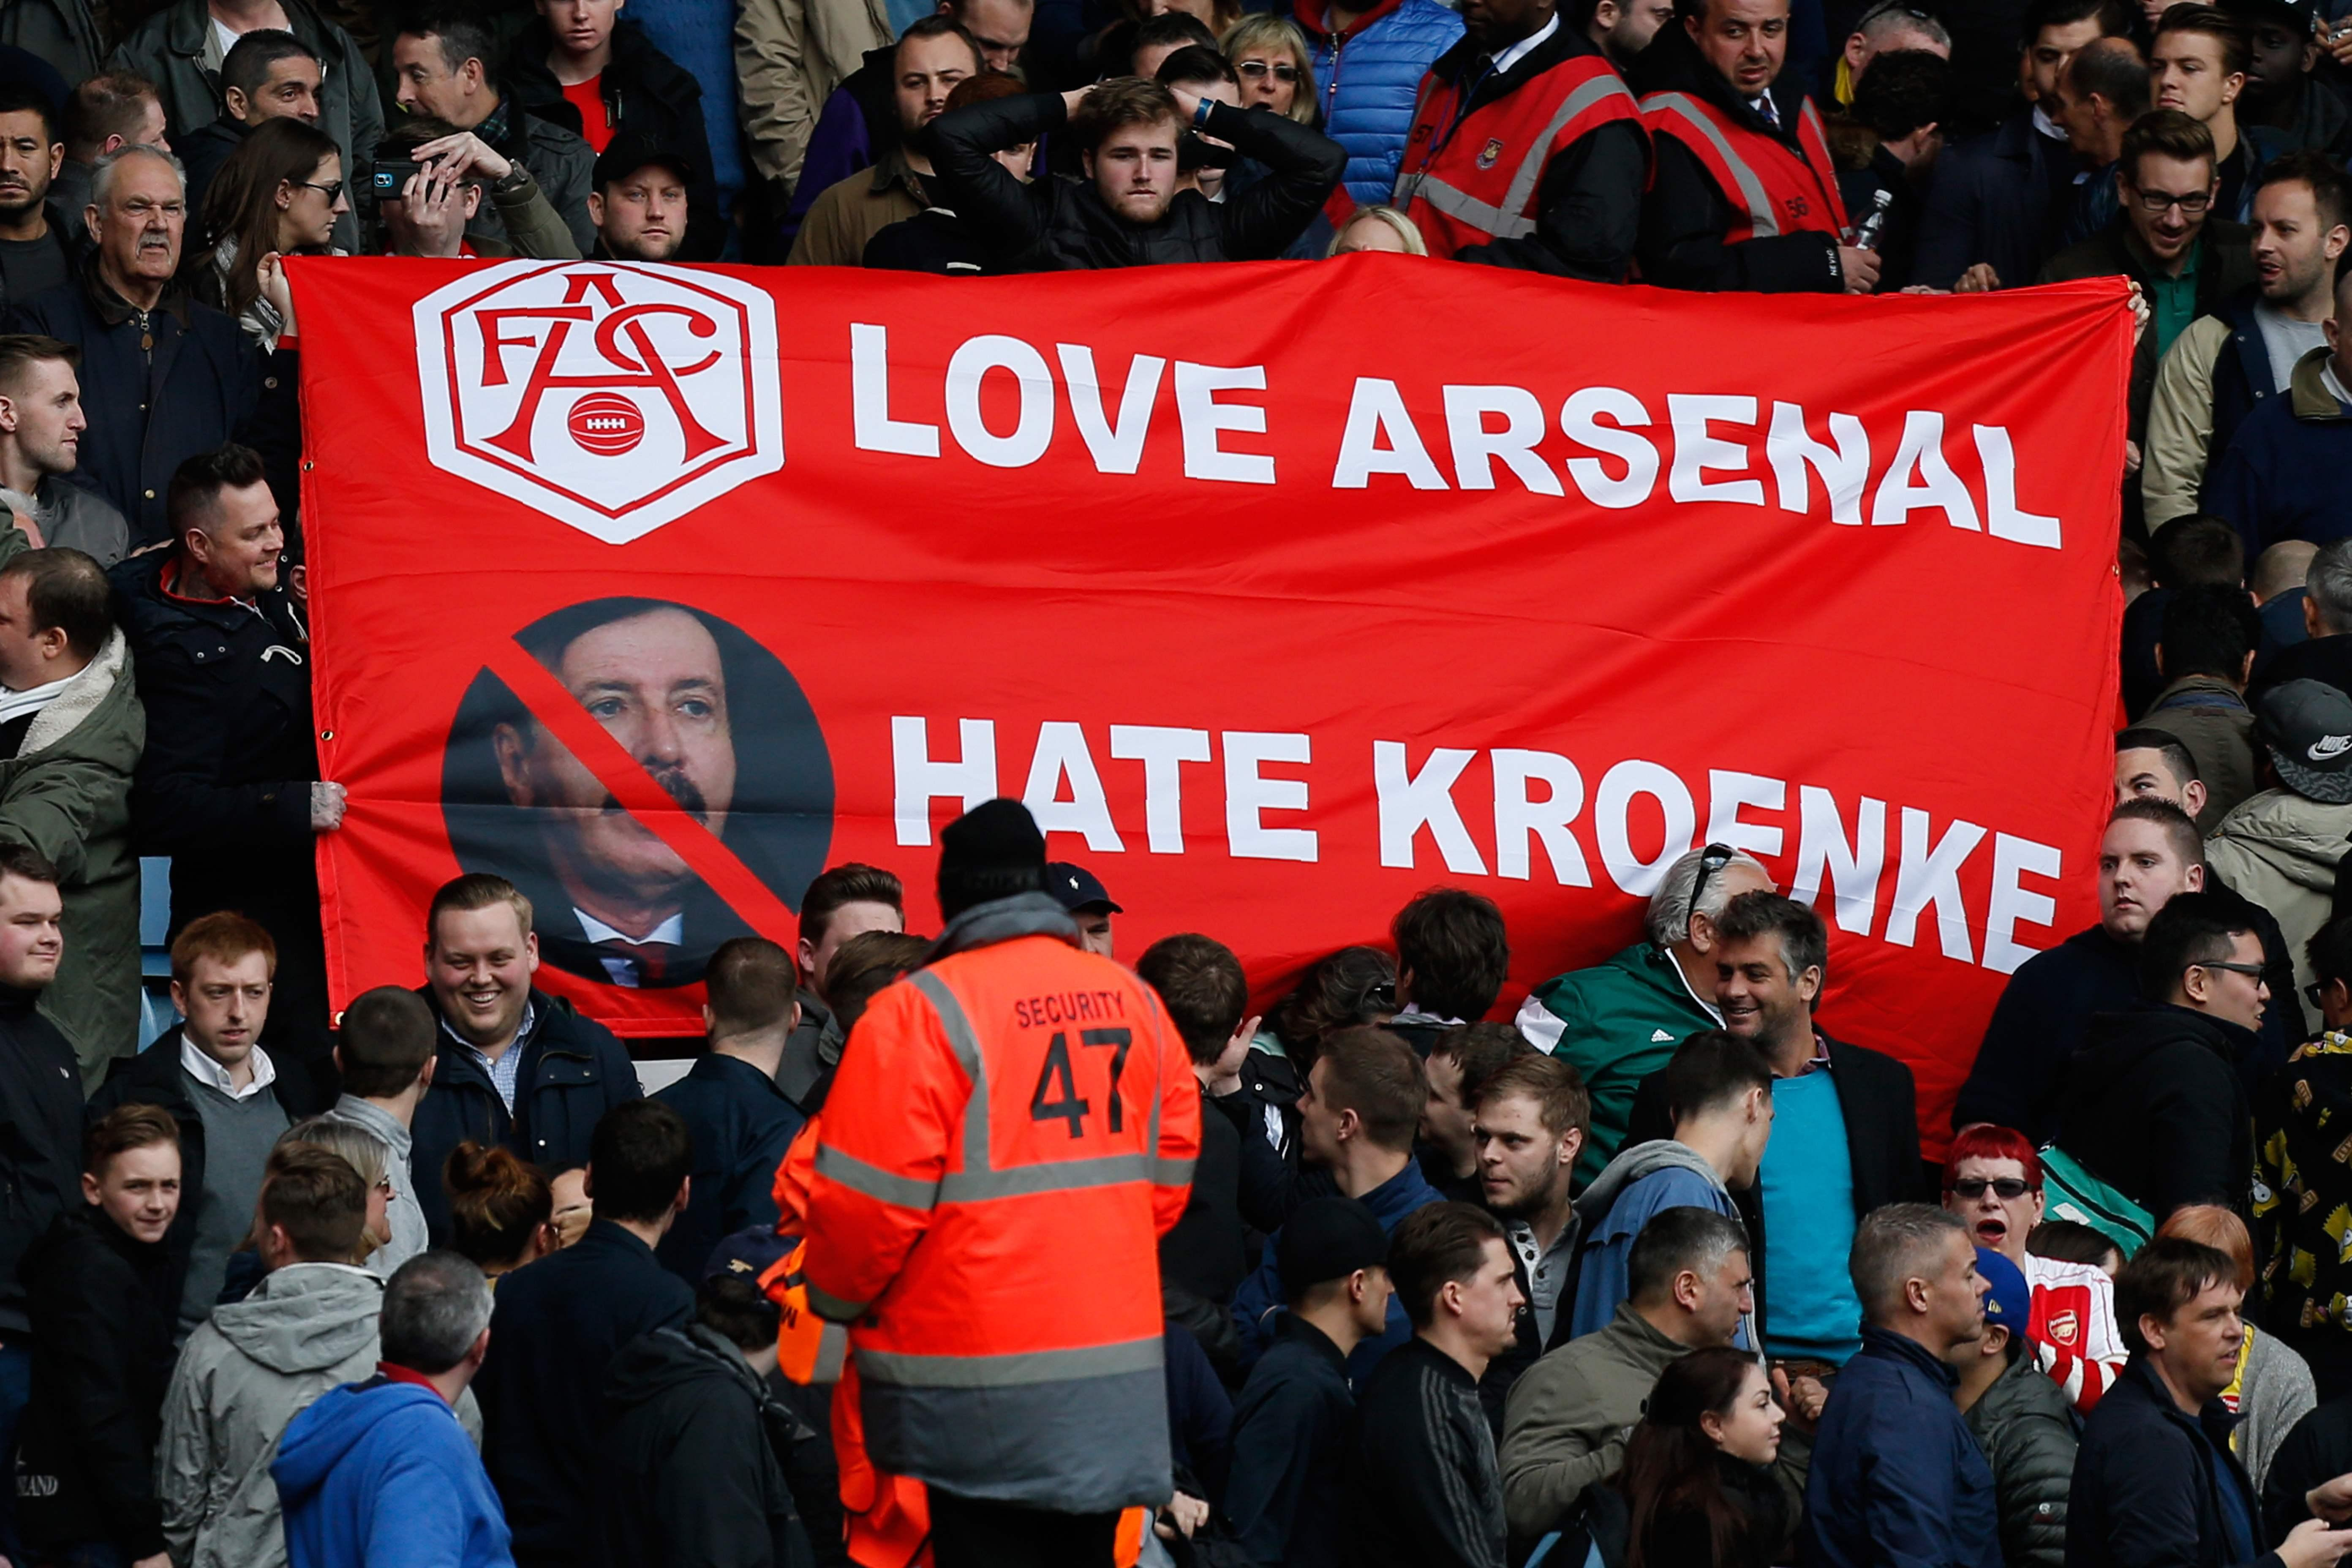 Arsenal fans are frustrated at Stan Kroenke for his investment levels in the club